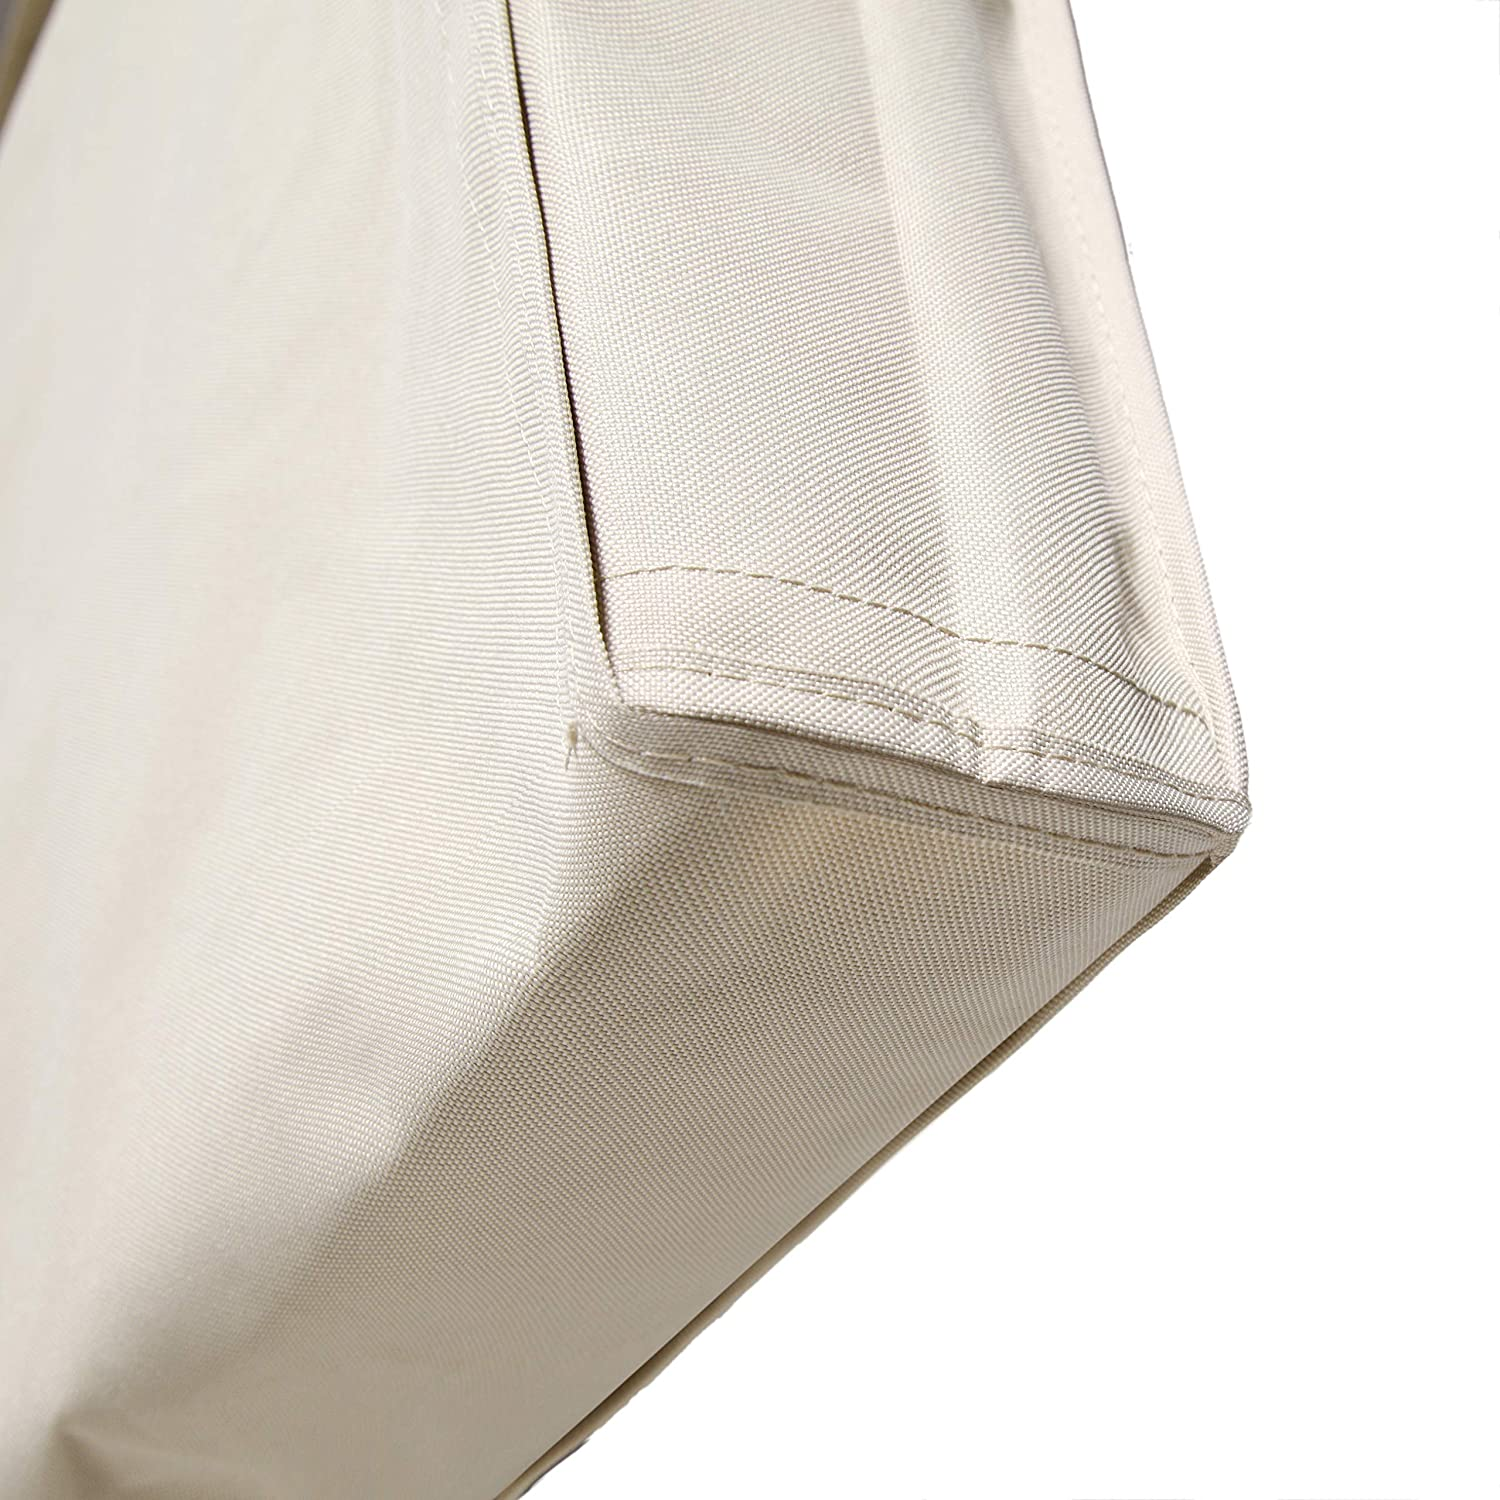 Lish Outdoor TV Cover with Front Flap Weatherproof Material 58-60, Beige